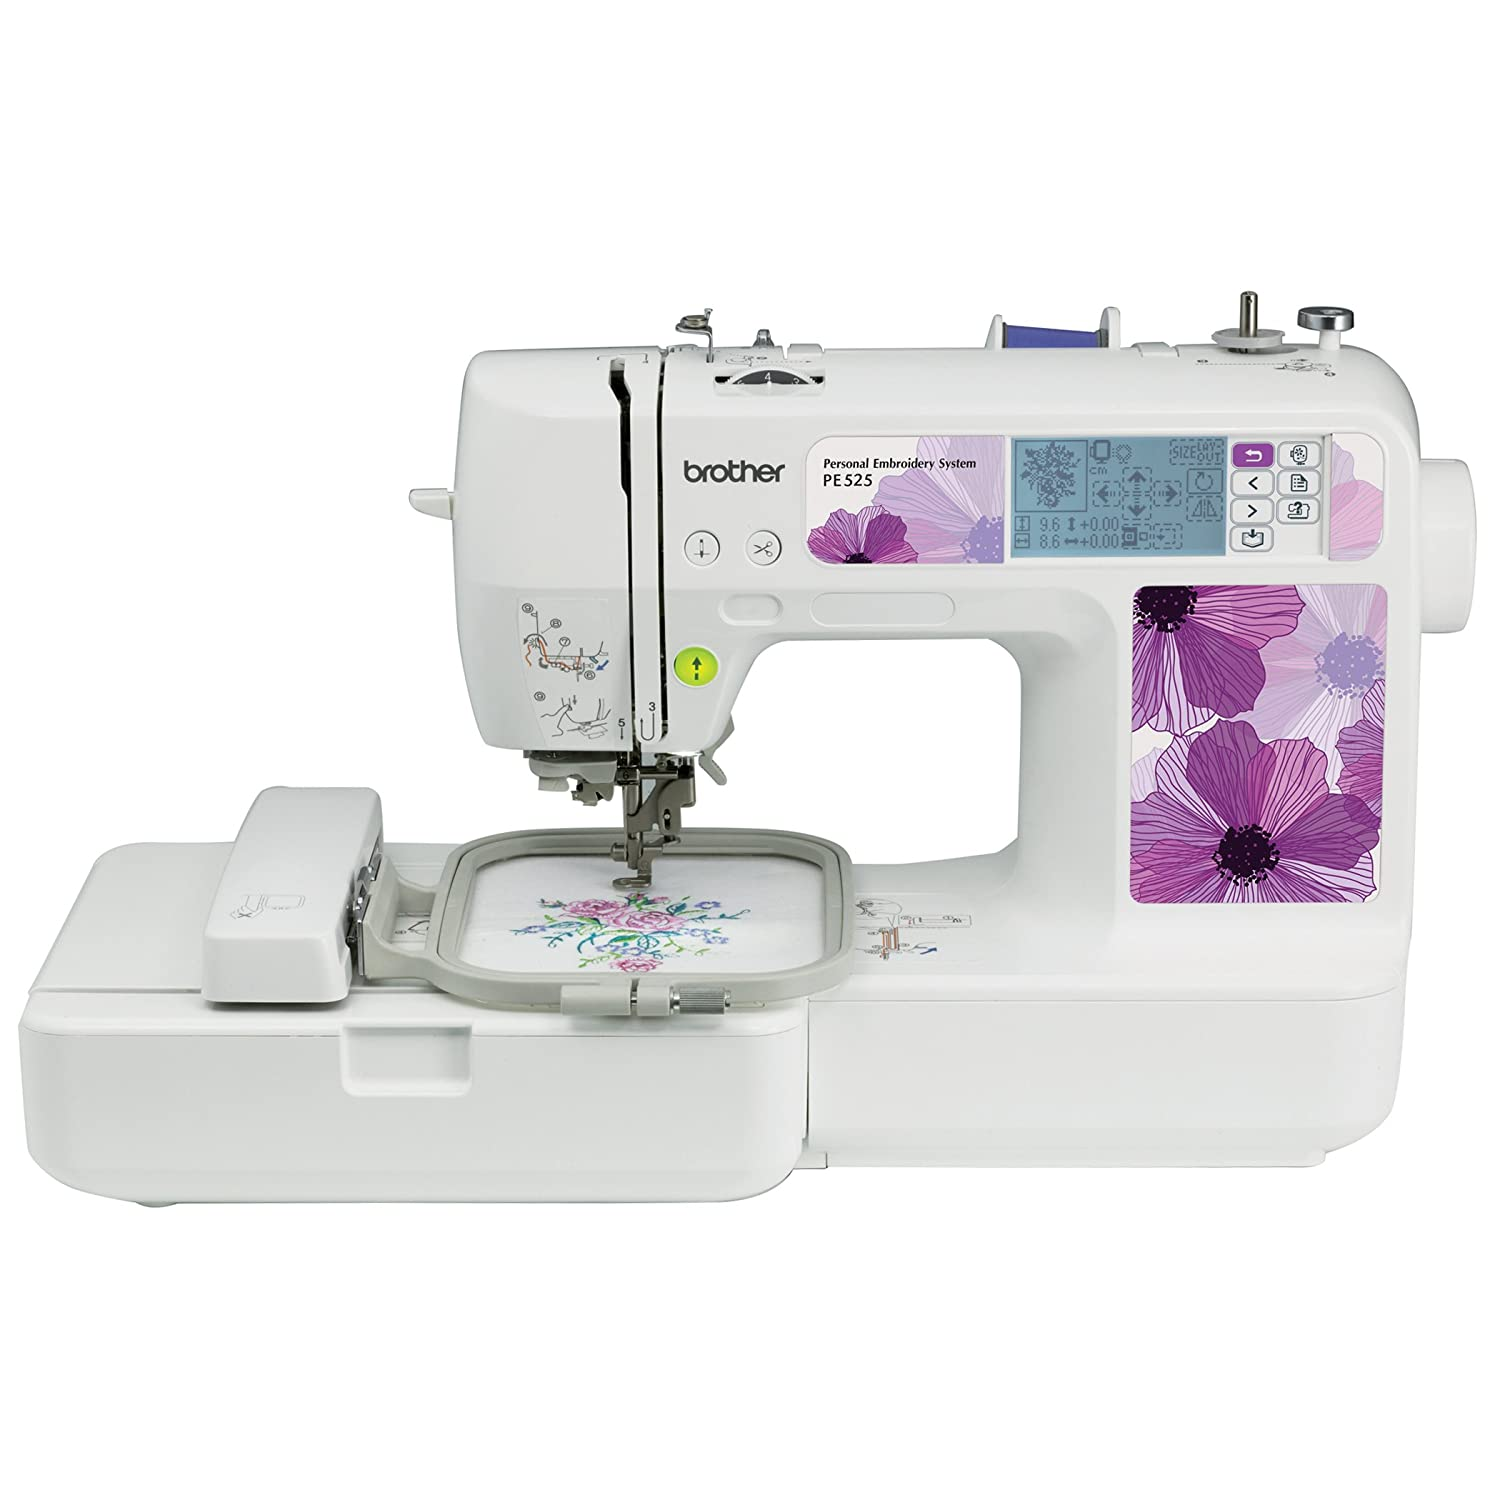 The Best Embroidery Machine 4